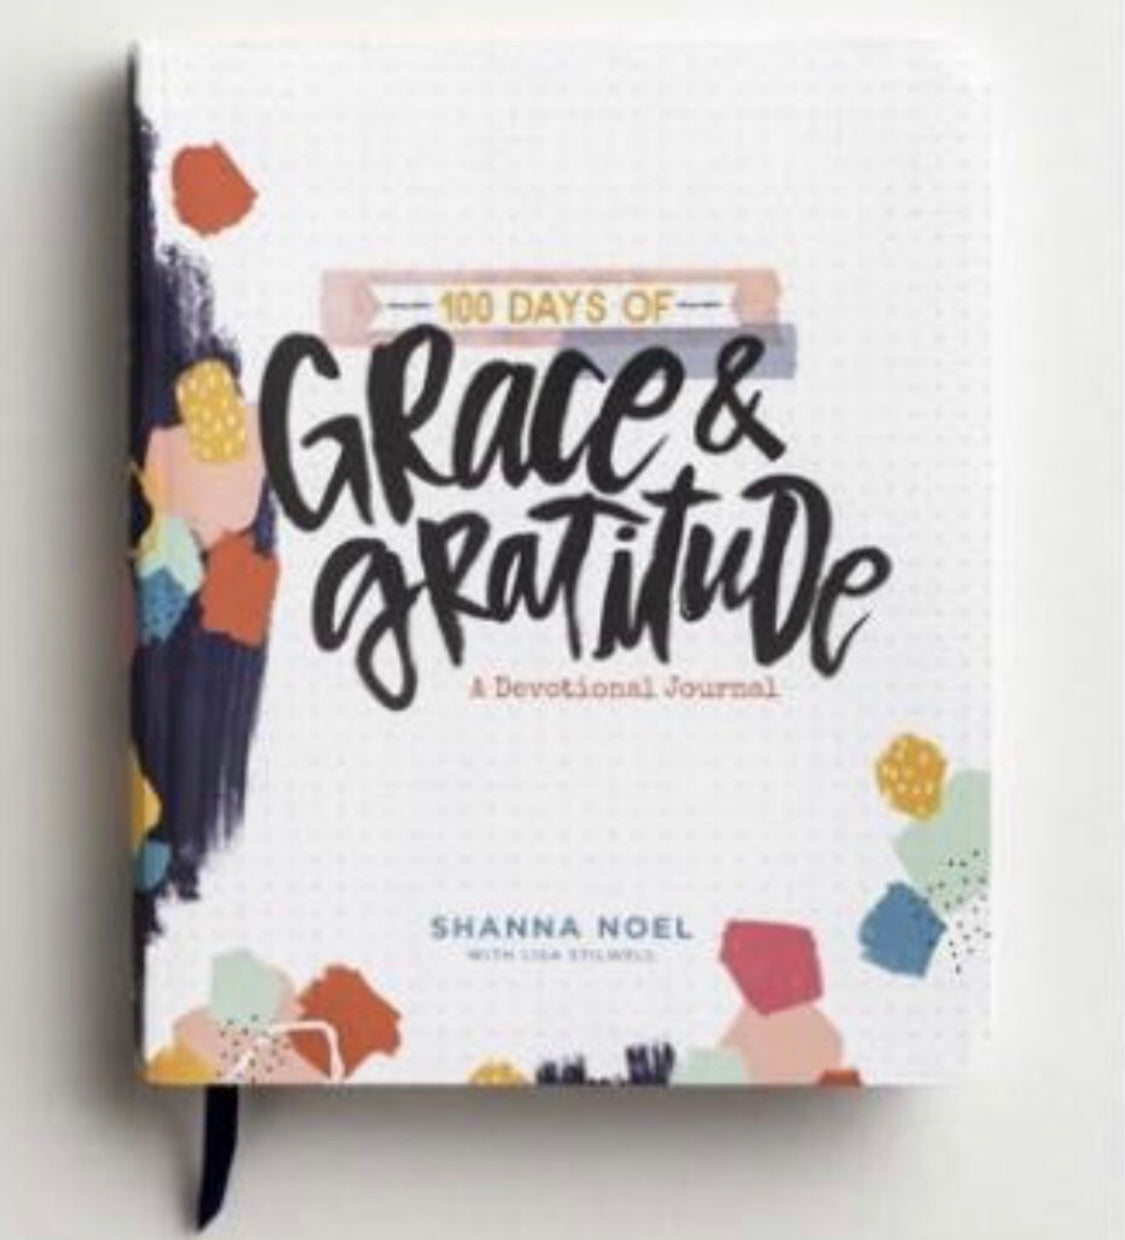 100 days of Grace & Gratitude by Shanna Noel